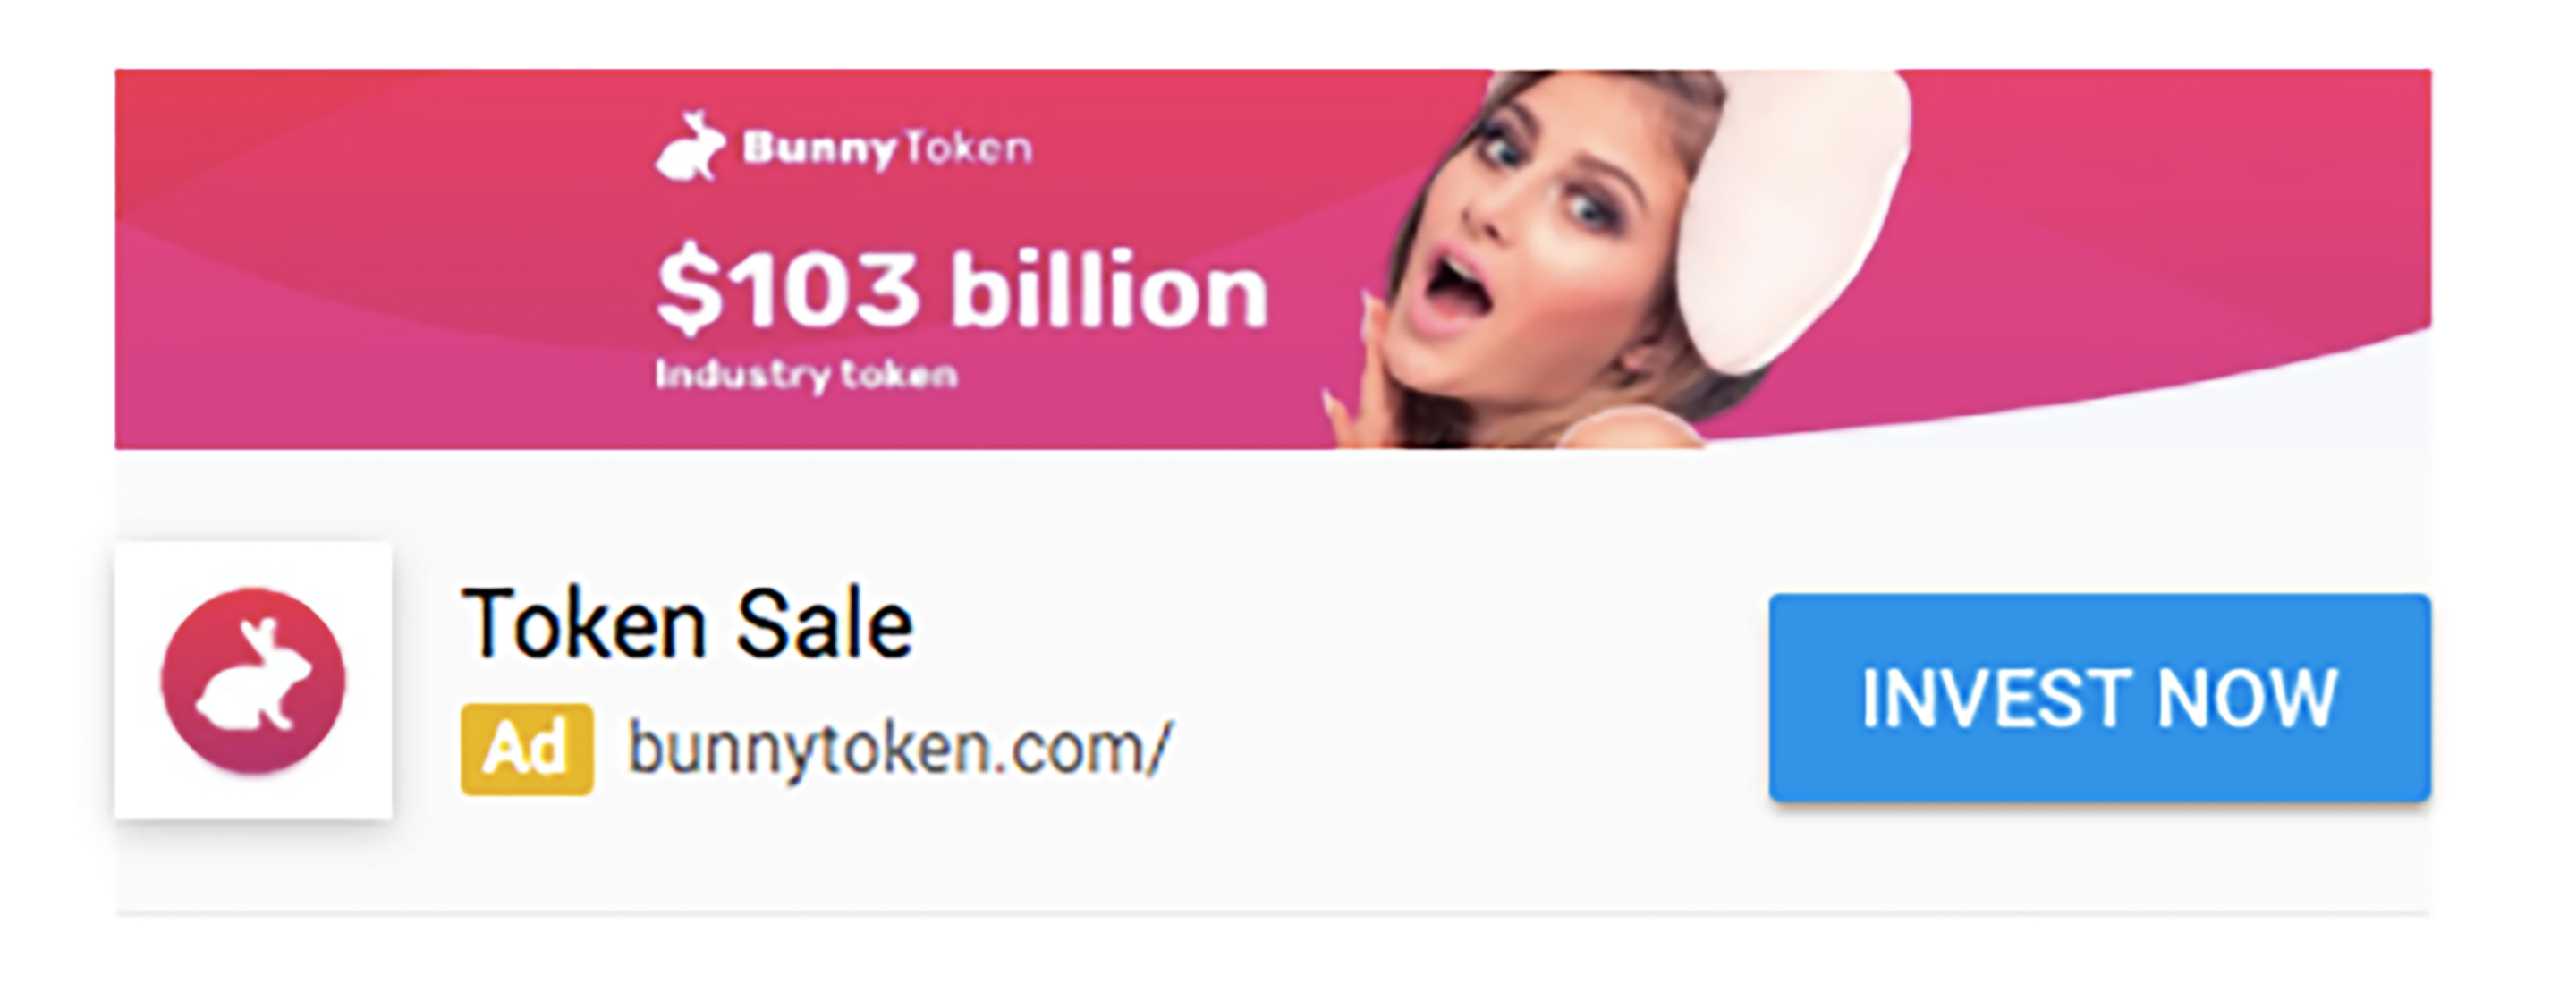 An example of a crypto currency ad from Google's Adsense platform